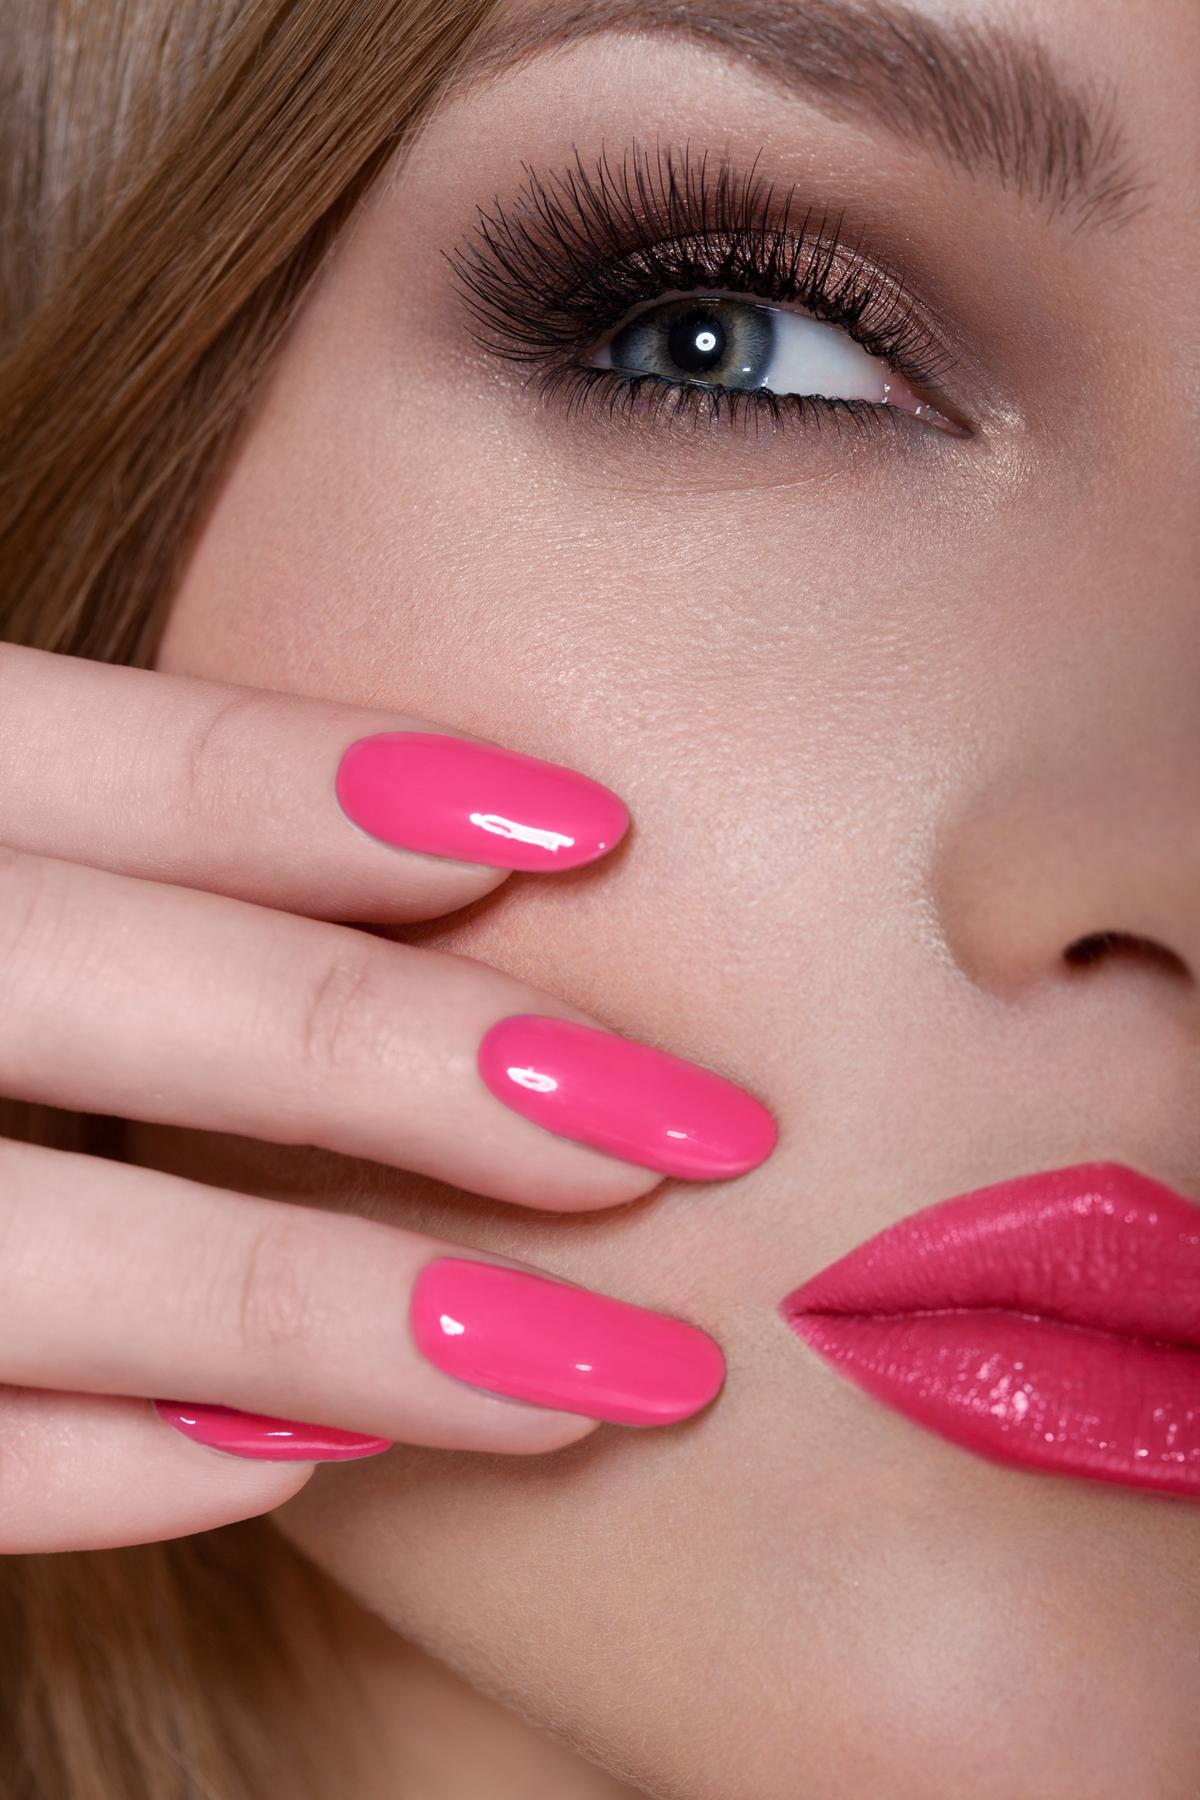 acrylic nails in white and pink gel photo - 2